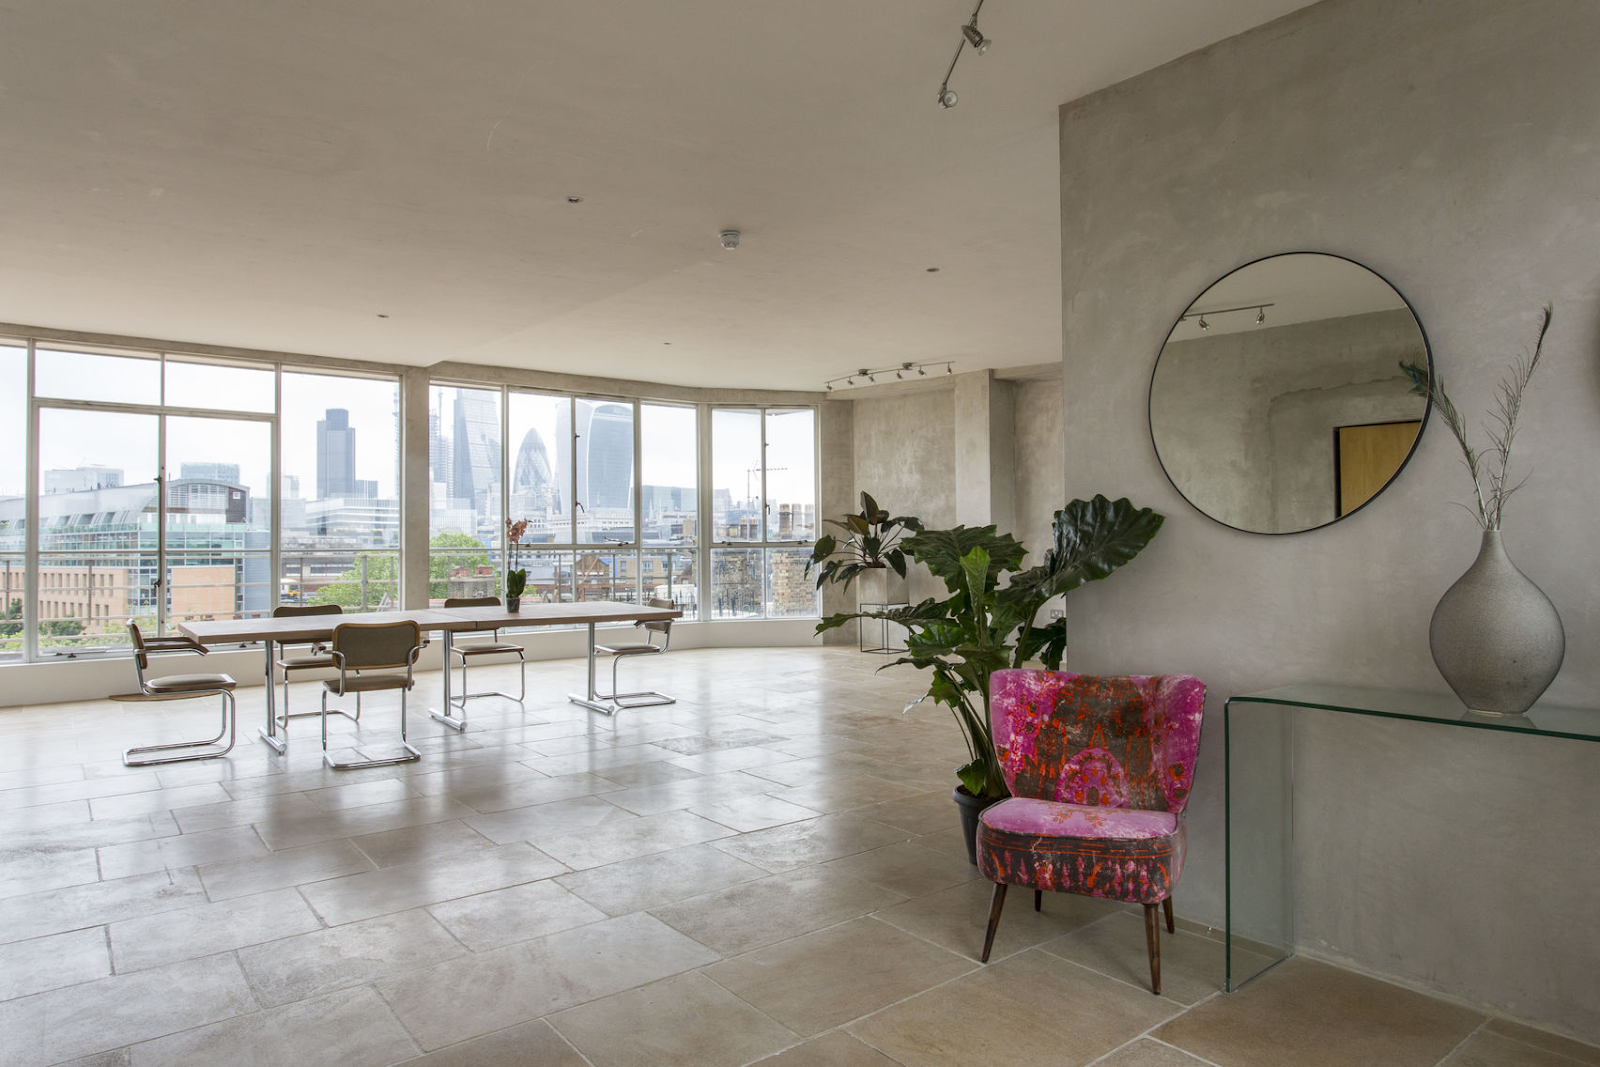 a large white penthouse event space with a large wall window overlooking the city at Menier Spaces